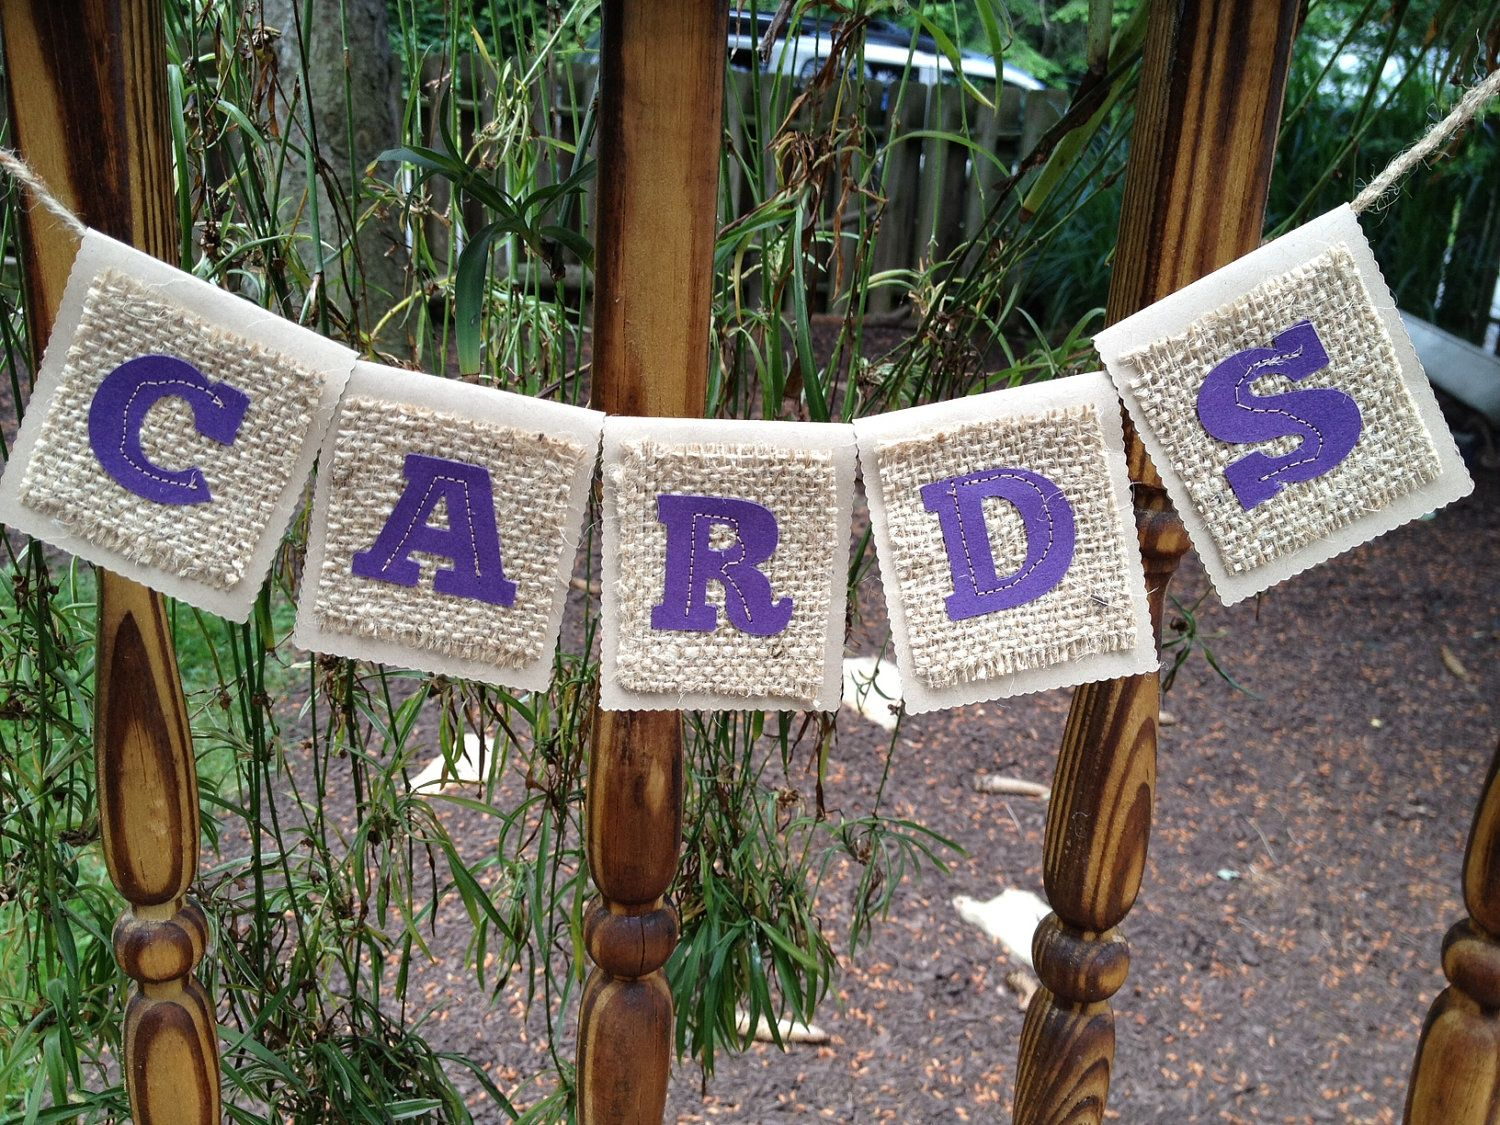 Wedding Cards or Gifts sign - Burlap, Cardstock, Sewn, Rustic, Shabby Chic, Vintage. $15.00, via Etsy.